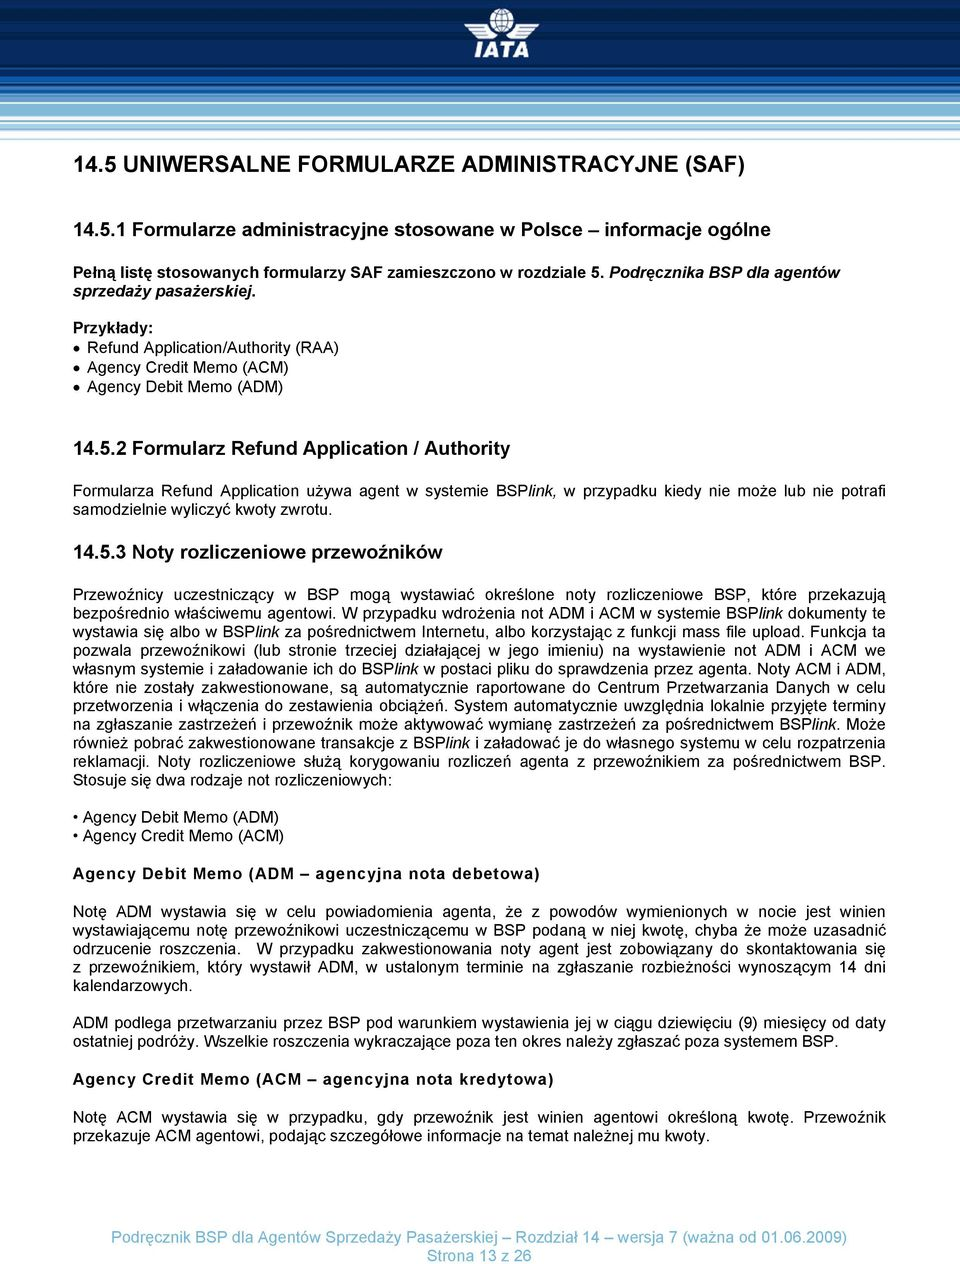 2 Formularz Refund Application / Authority Formularza Refund Application używa agent w systemie BSPlink, w przypadku kiedy nie może lub nie potrafi samodzielnie wyliczyć kwoty zwrotu. 14.5.